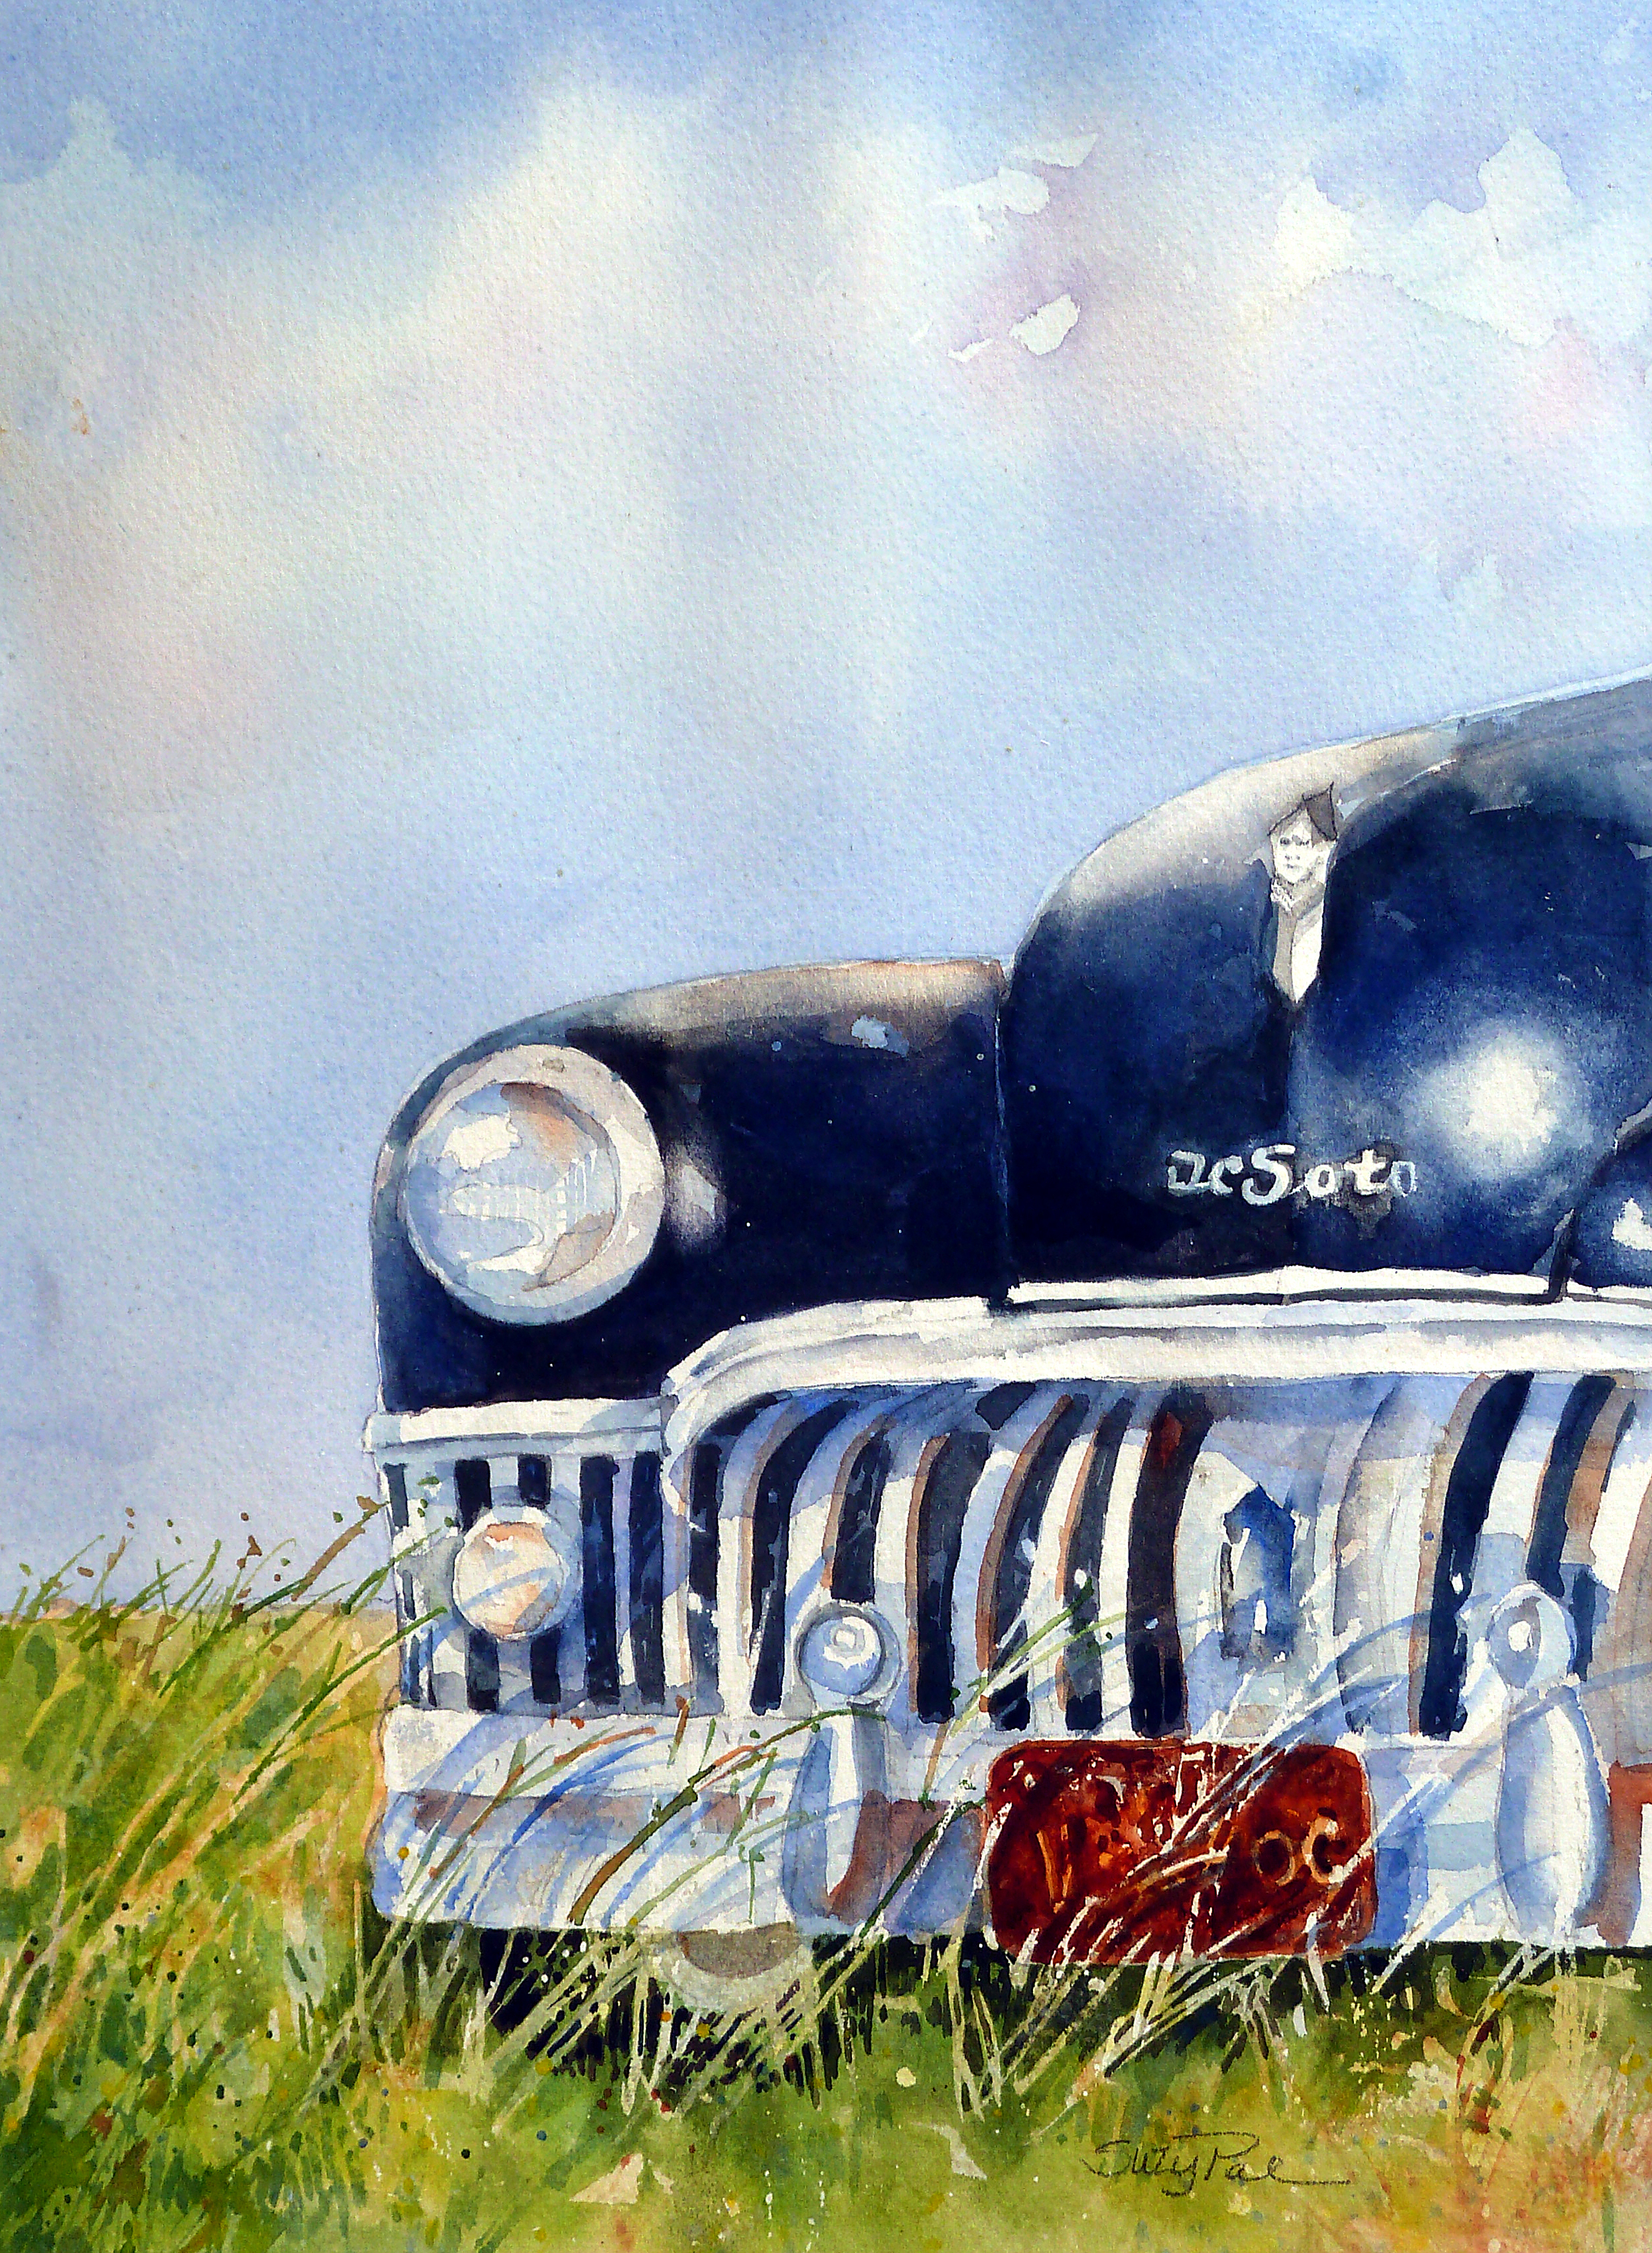 Just Park'n16x20watercolorSuzy'Pal'Powell.jpg